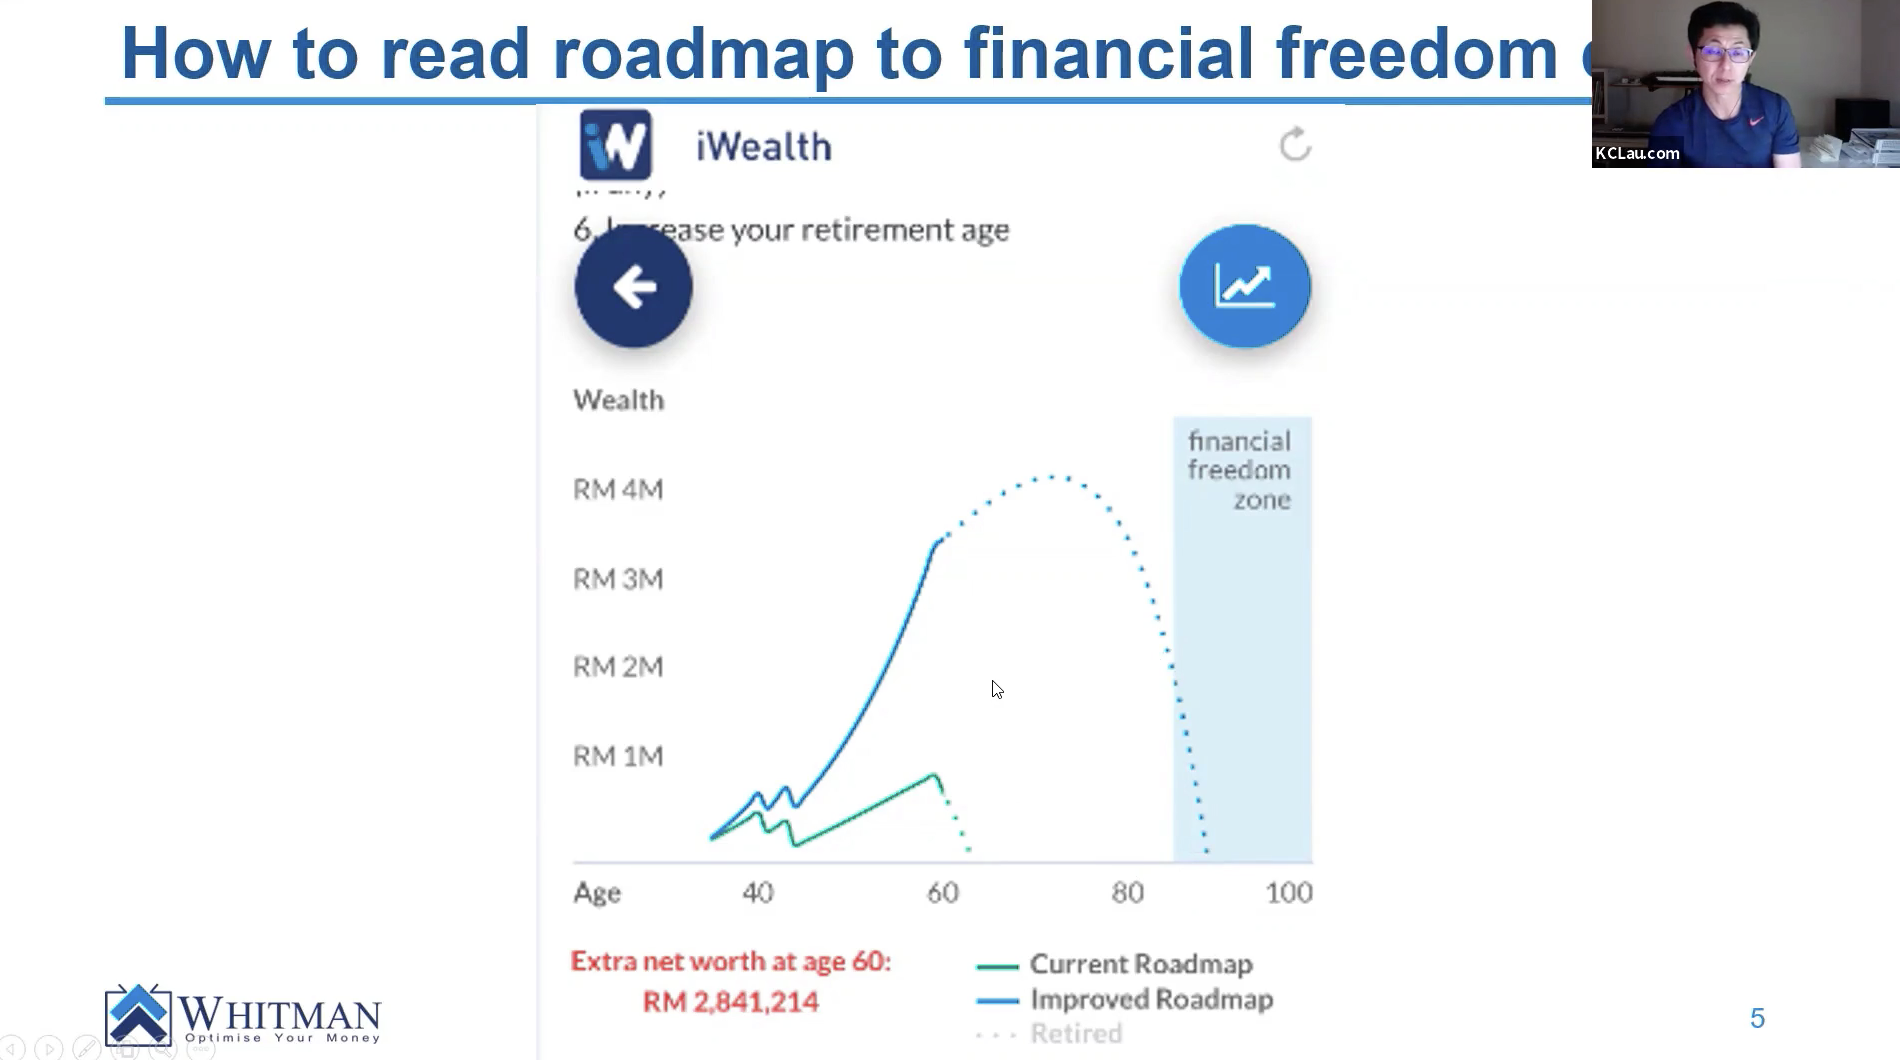 Real-life Application of Roadmap to Financial Freedom using iWealth